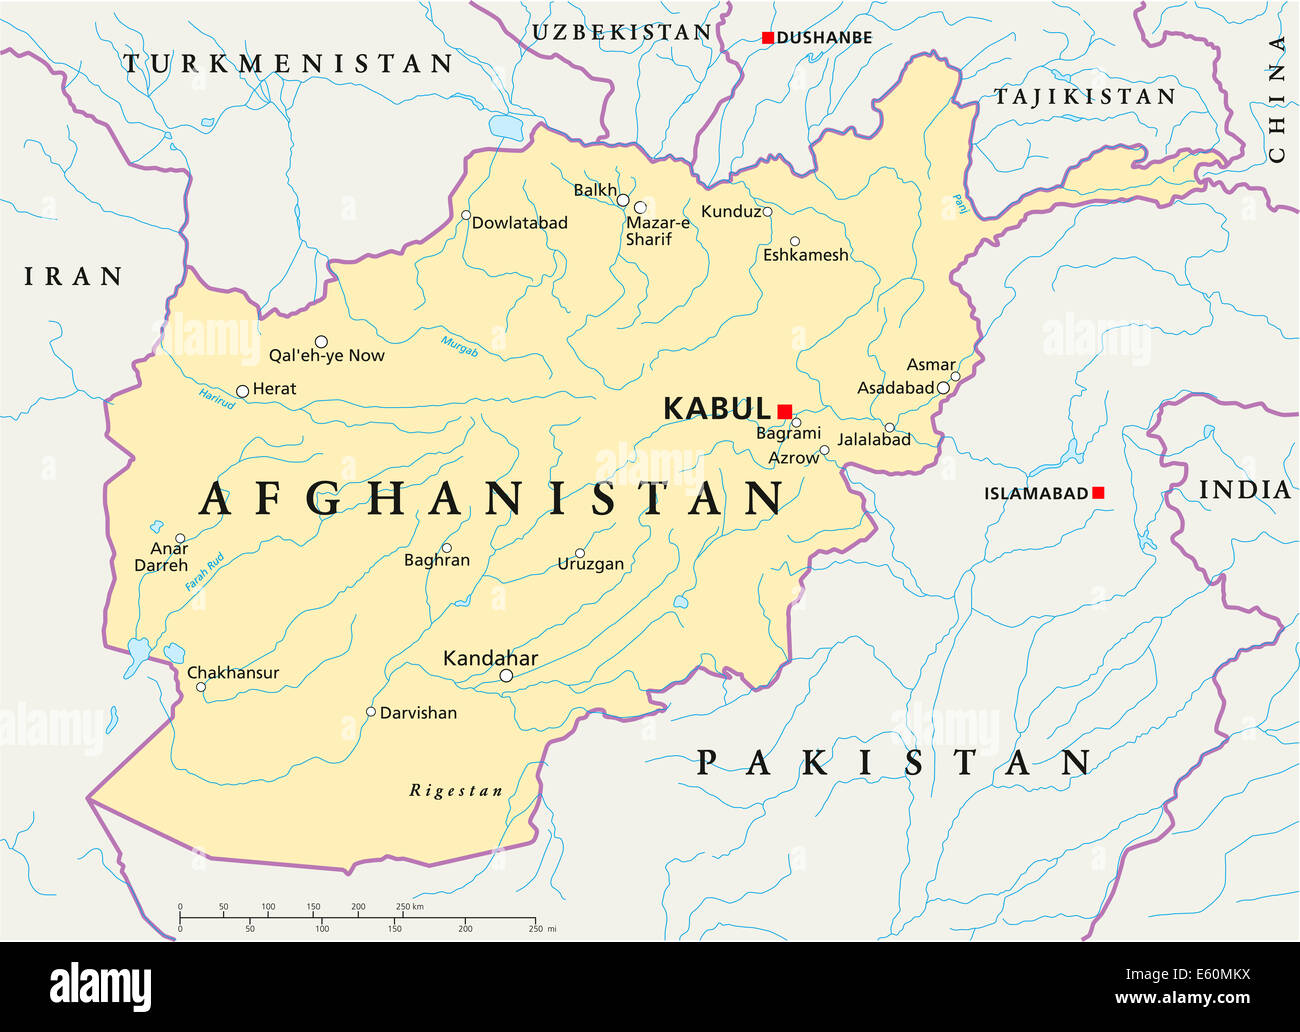 Afghanistan Political Map - Stock Image